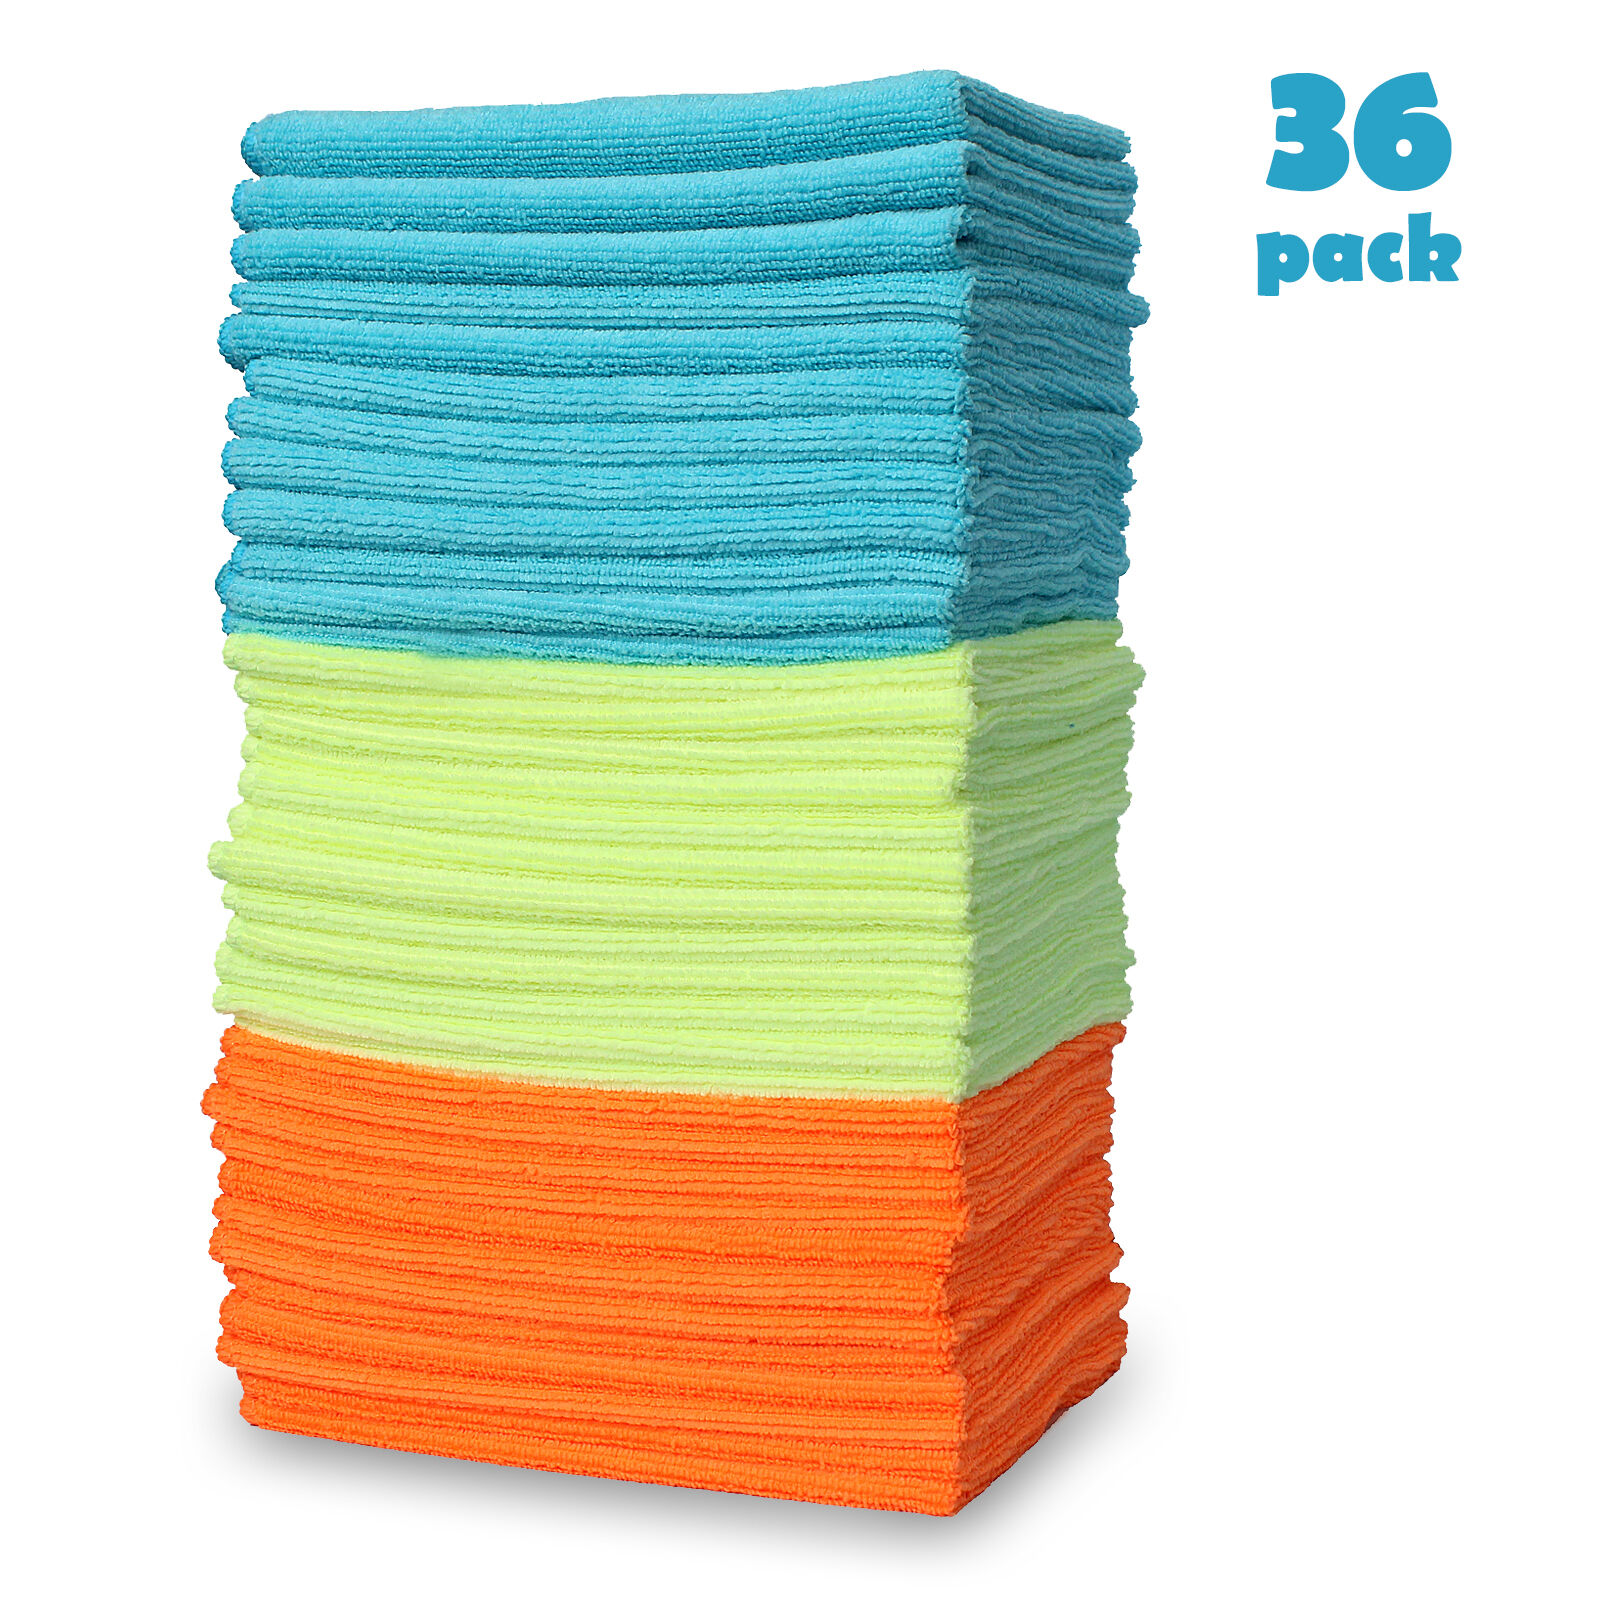 36 Pack Large Microfiber Detailing Towel Home Rag Car Cleani